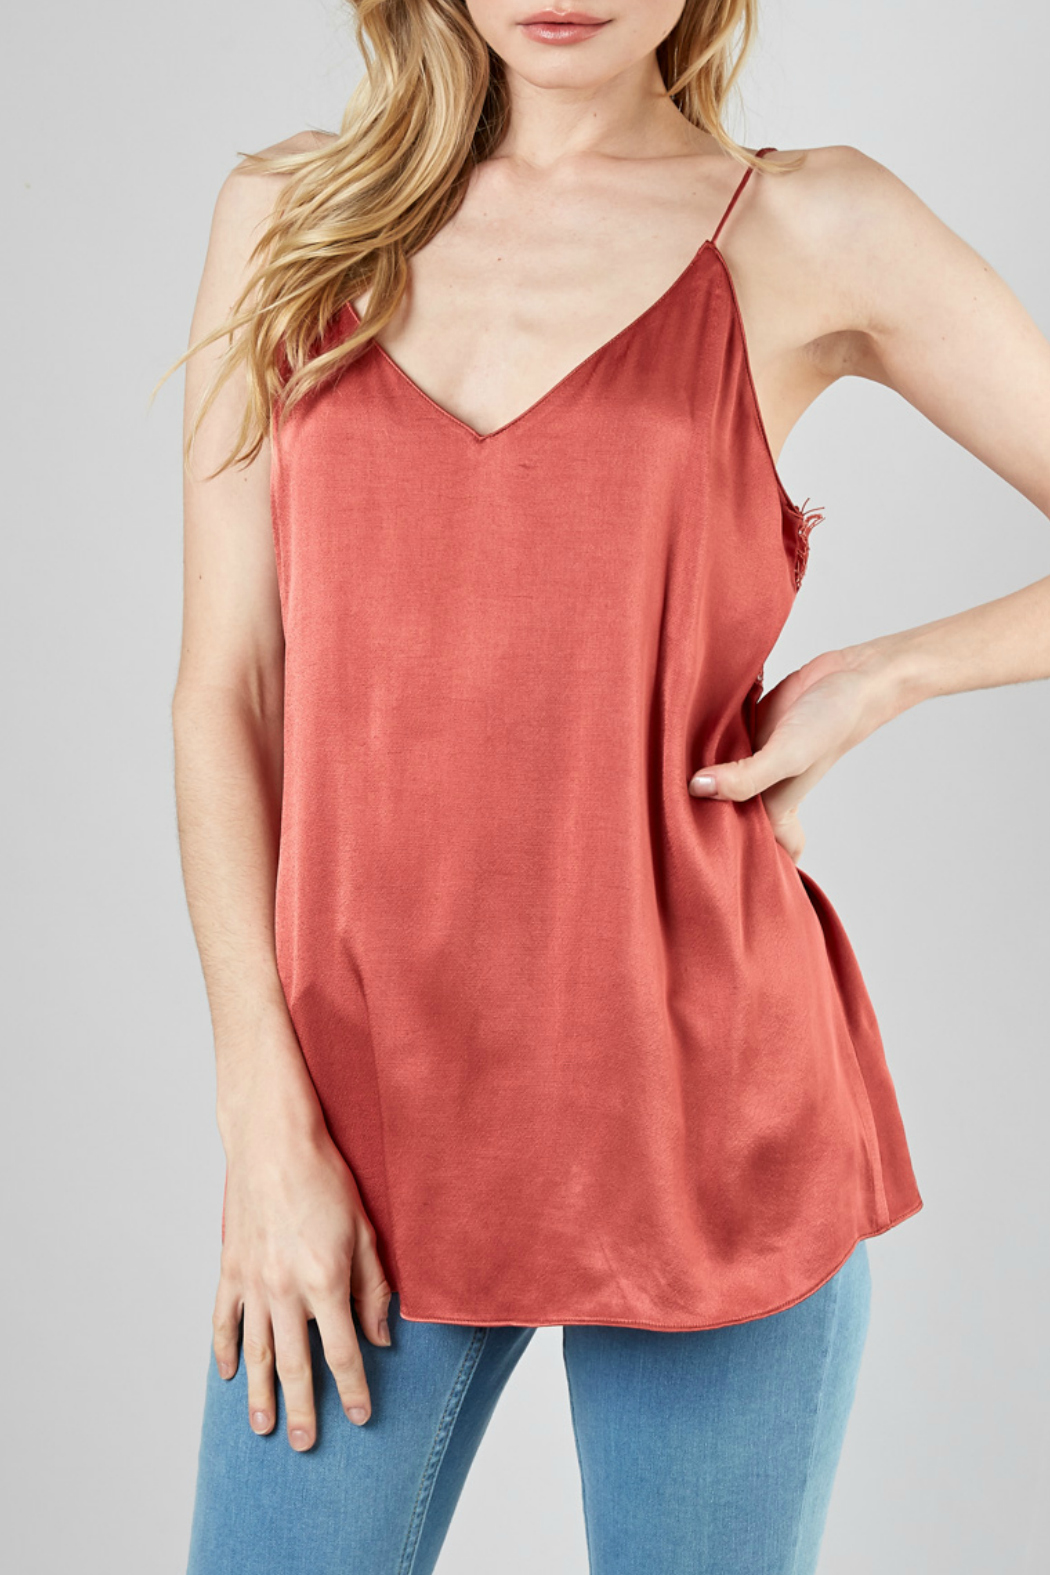 Do & Be Back lace trim sleeveless top - Front Full Image